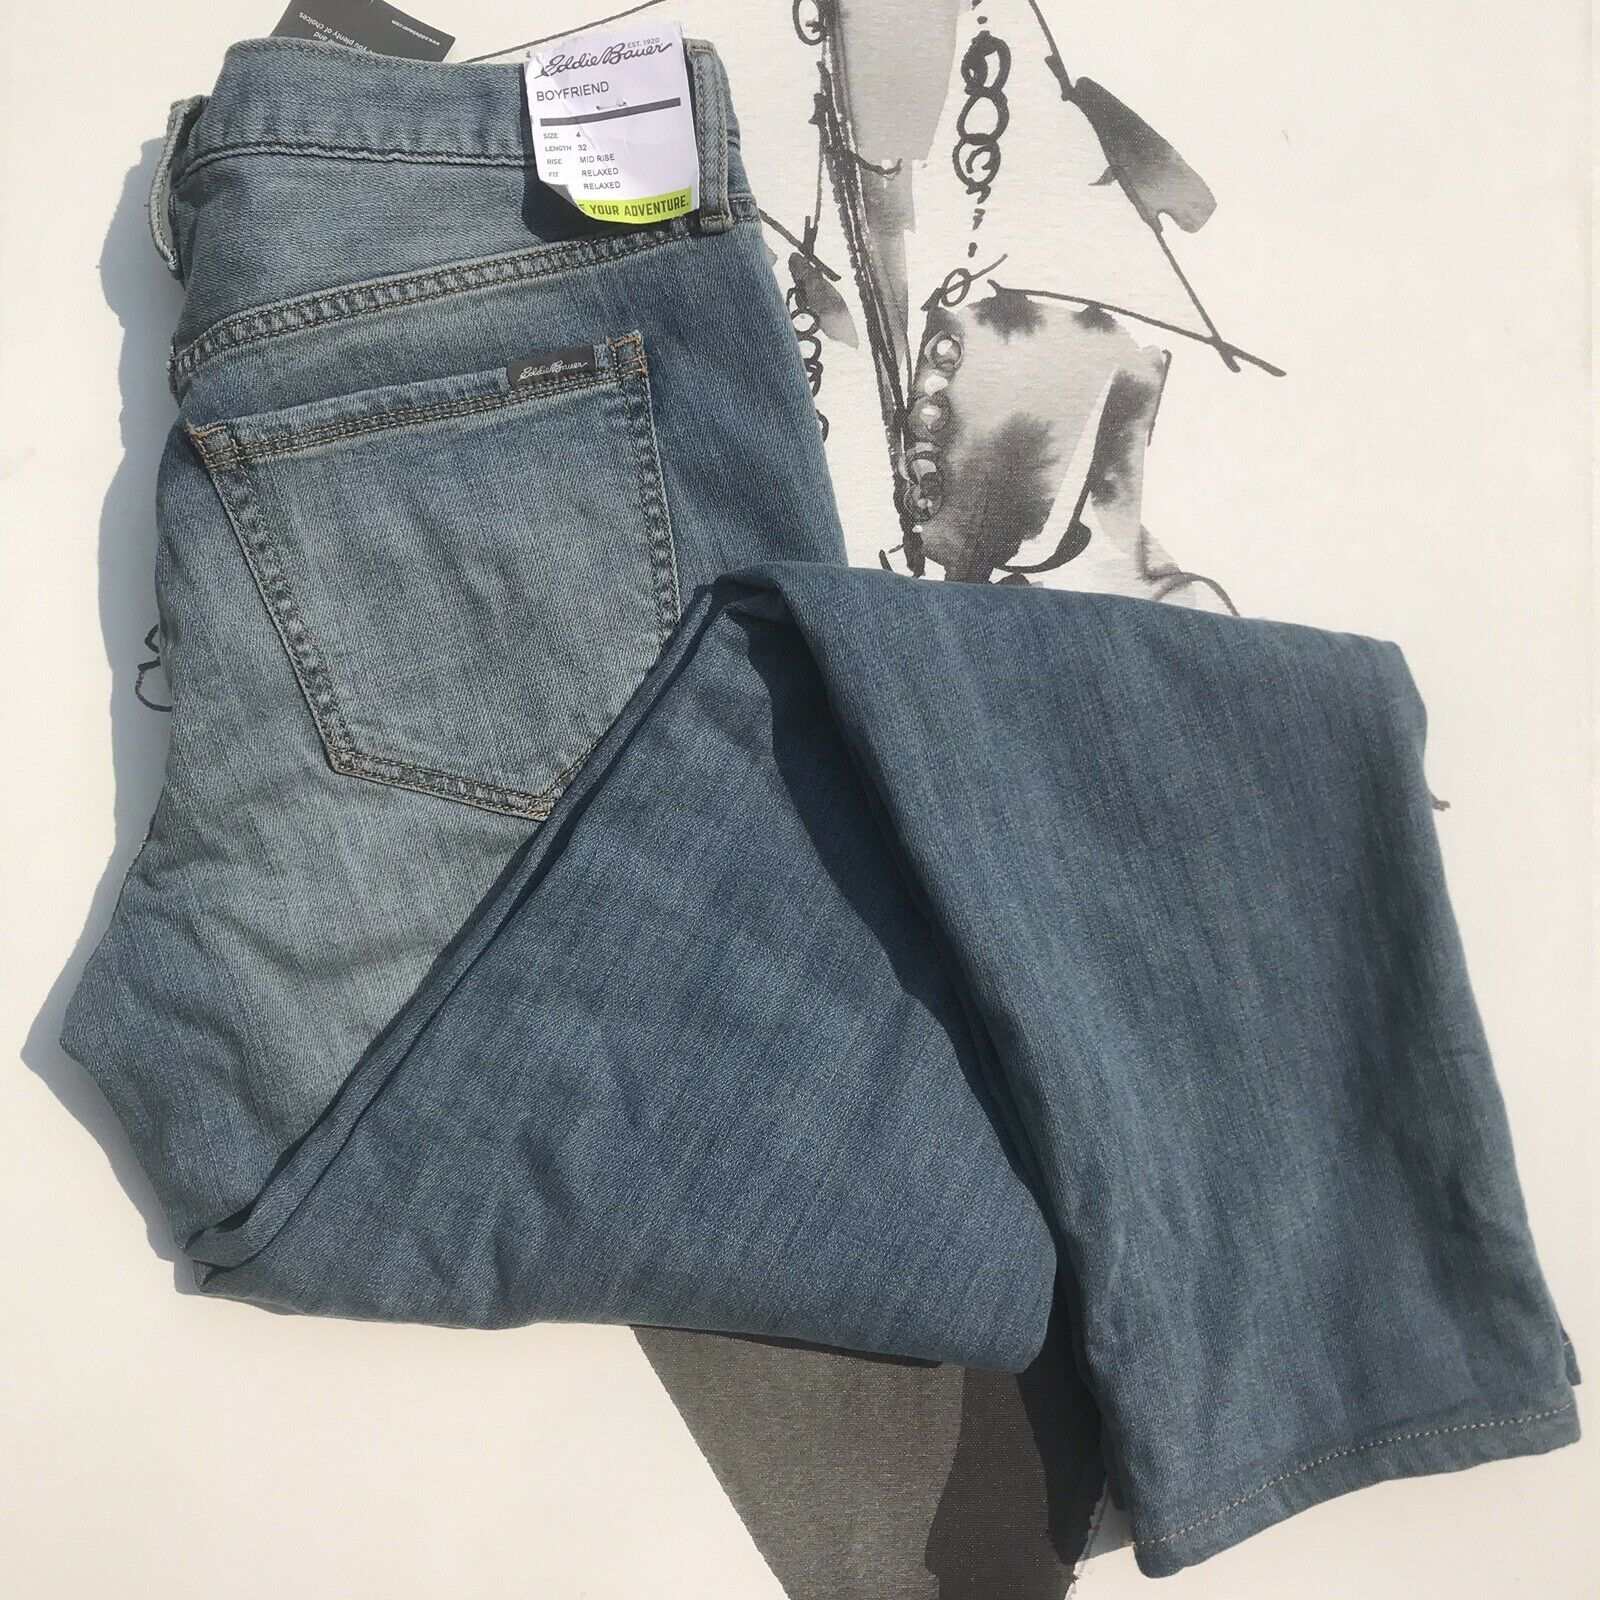 bfd1f414f3e872 Mid Rise Relaxed Lined Boyfriend Jeans Eddie Bauer Fit Flannel ...